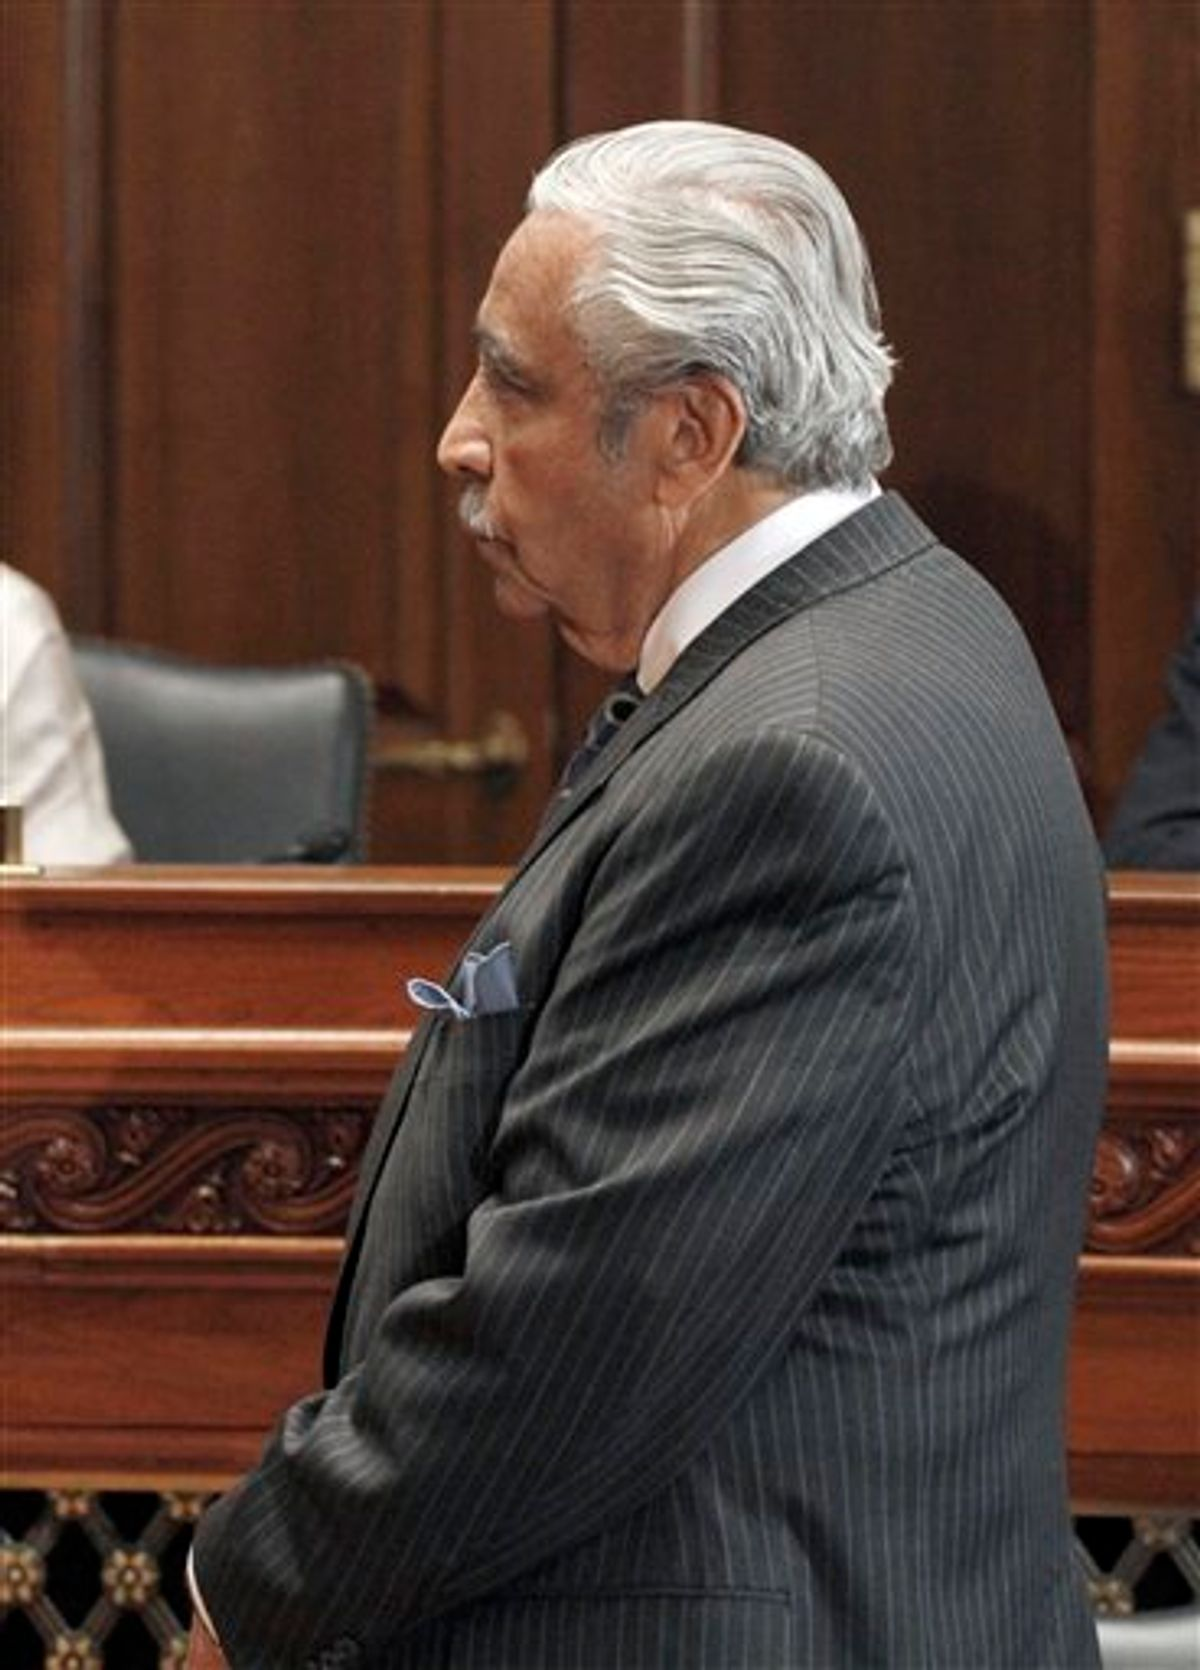 Rep. Charles Rangel, D-N.Y., listens to House ethics committee chairman Rep. Zoe Lofgren, D-Calif, on Capitol Hill in Washington, Thursday, Nov. 18, 2010. The committee recommended censure for Rangel, suggesting that the New York Democrat suffer the embarrassment of standing before his colleagues while receiving an oral rebuke by the speaker for financial and fundraising misconduct. (AP Photo/Harry Hamburg) (AP)